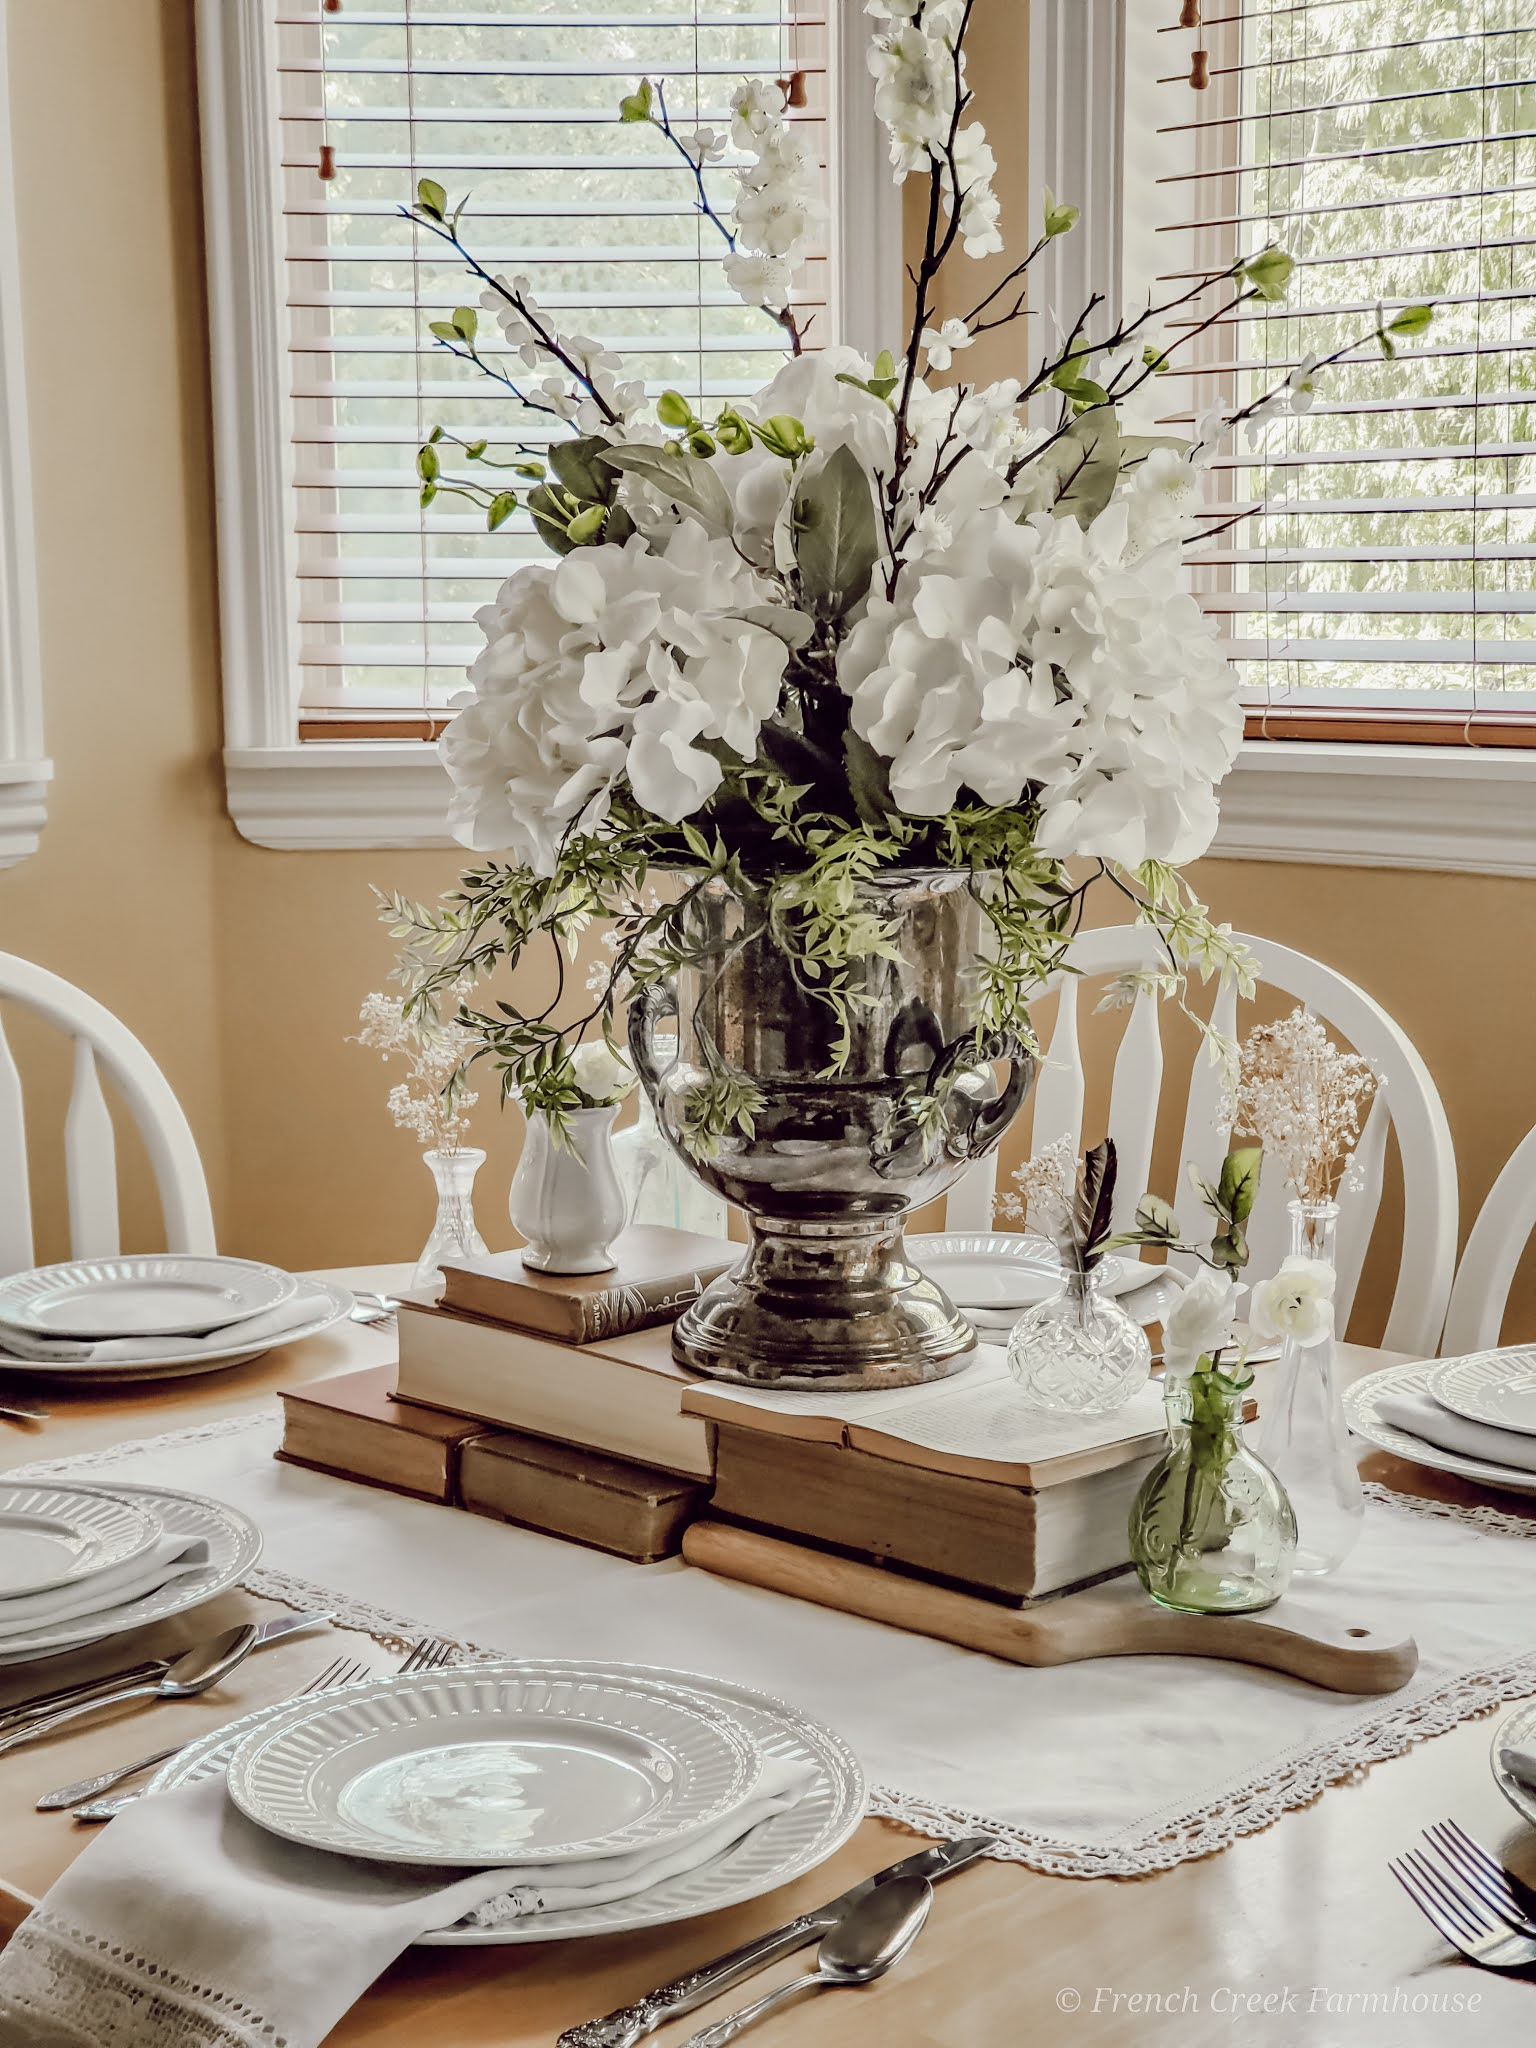 Vintage champagne bucket filled with hydrangeas make a lovely centerpiece